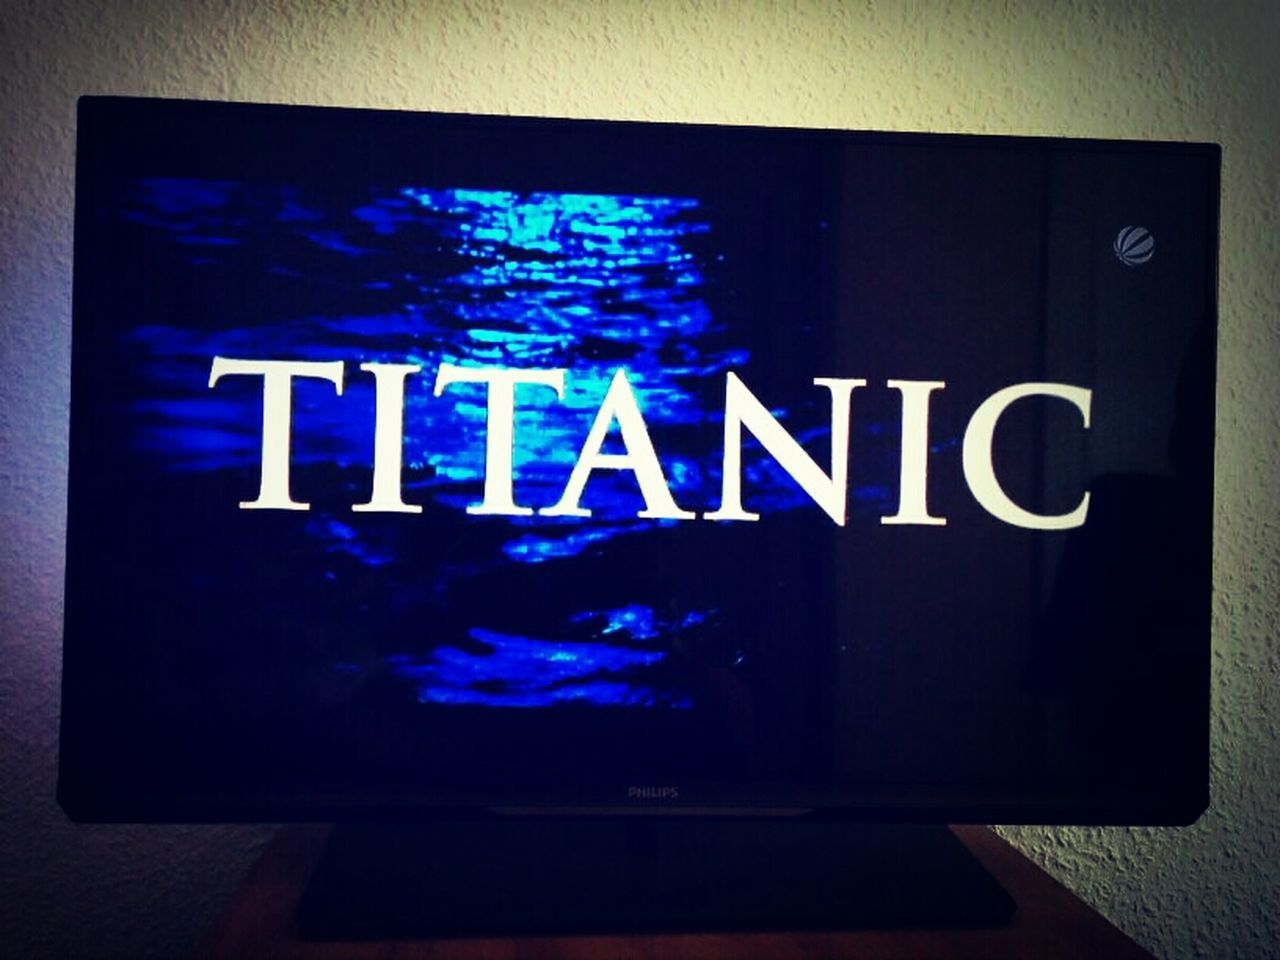 favorite MOVIE *-* Titanic Tv Sat1